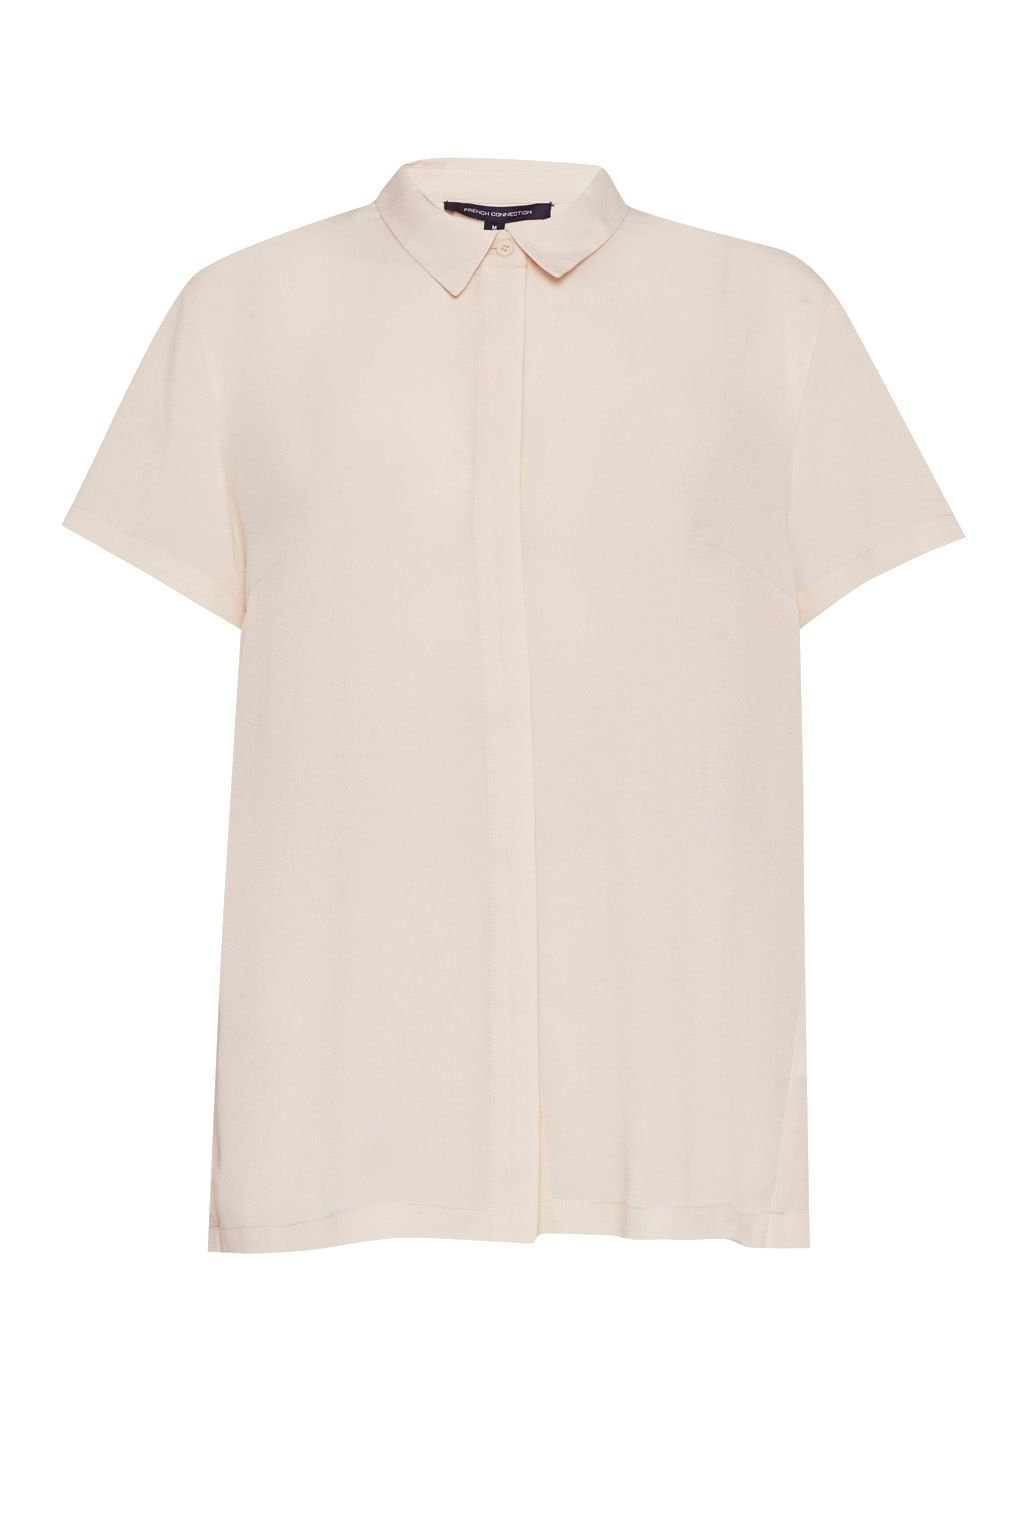 French Connection Classic Crepe Short Sleeve Shirt, Cream